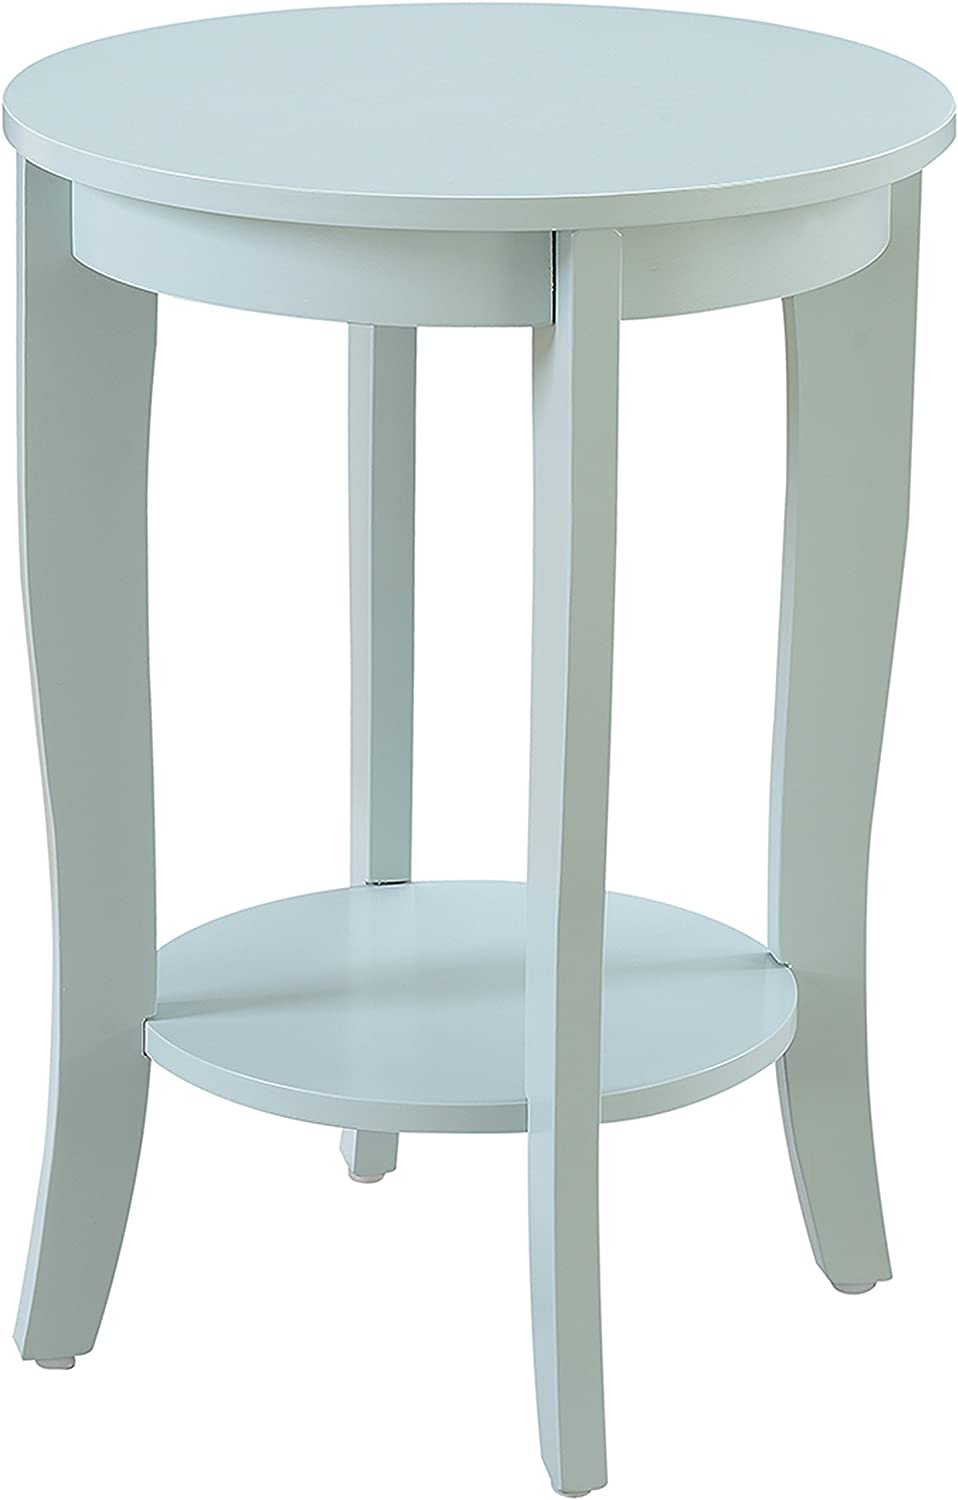 Convenience Concepts 7106259SF American Heritage Round End Table, Sea Foam